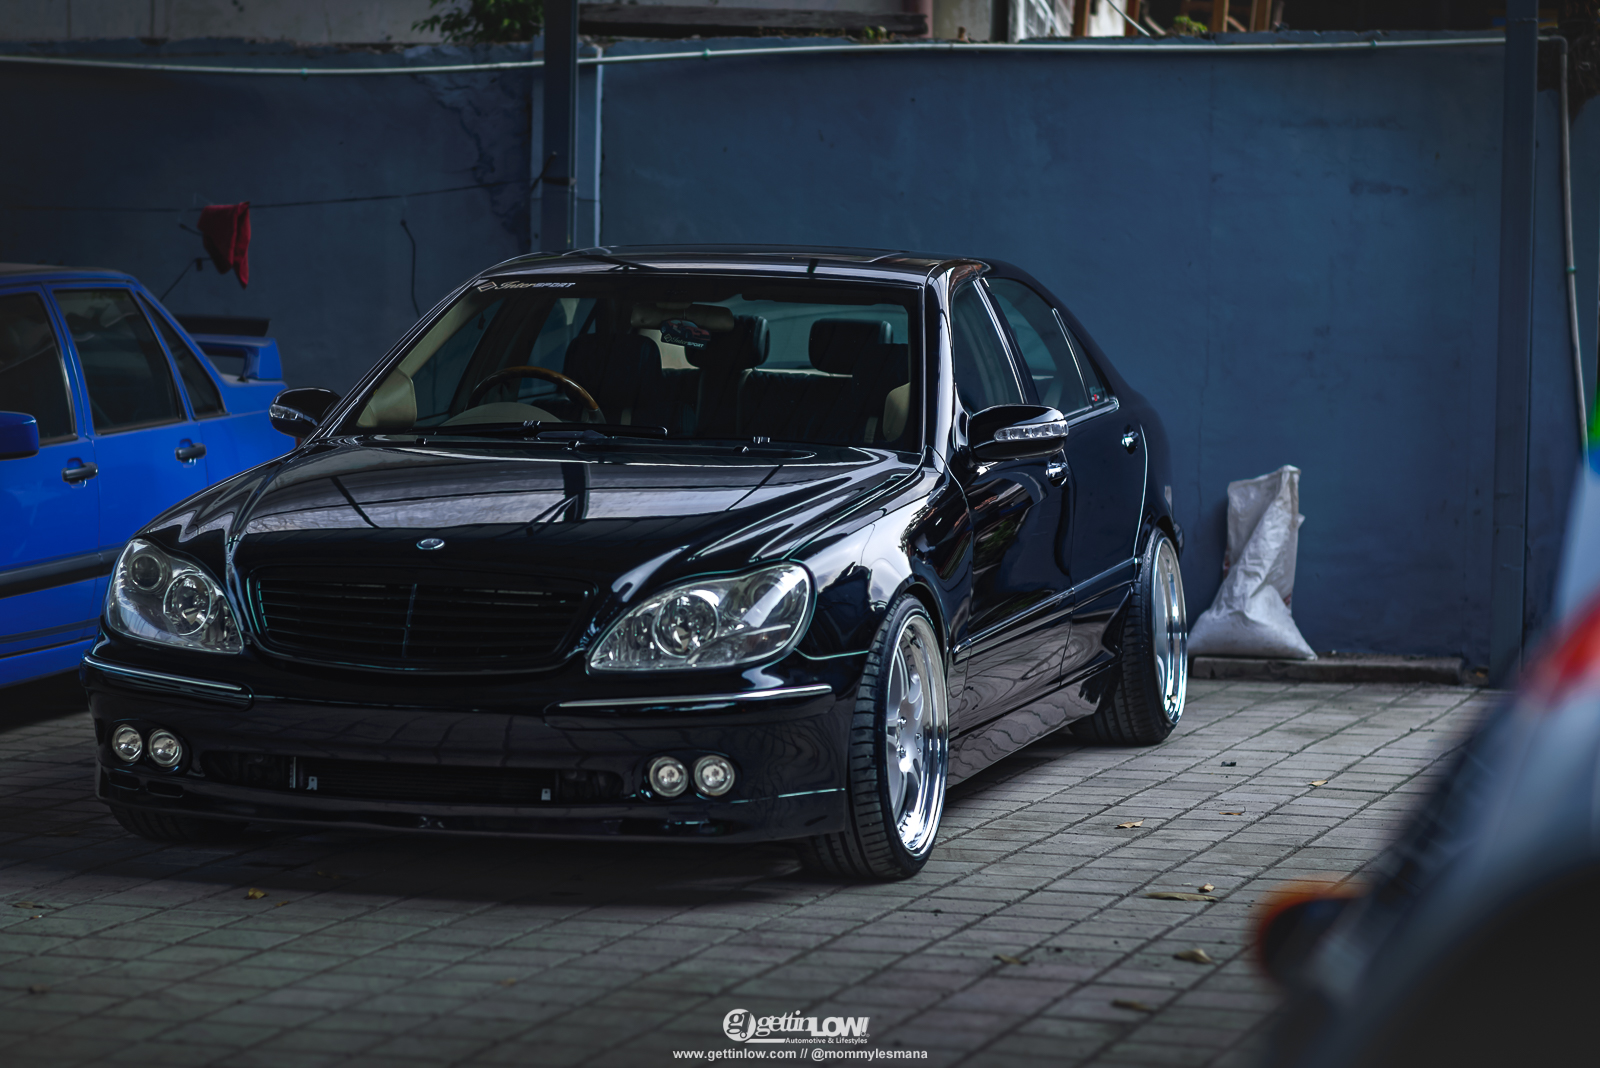 MB S Class Intersport Iconic Car